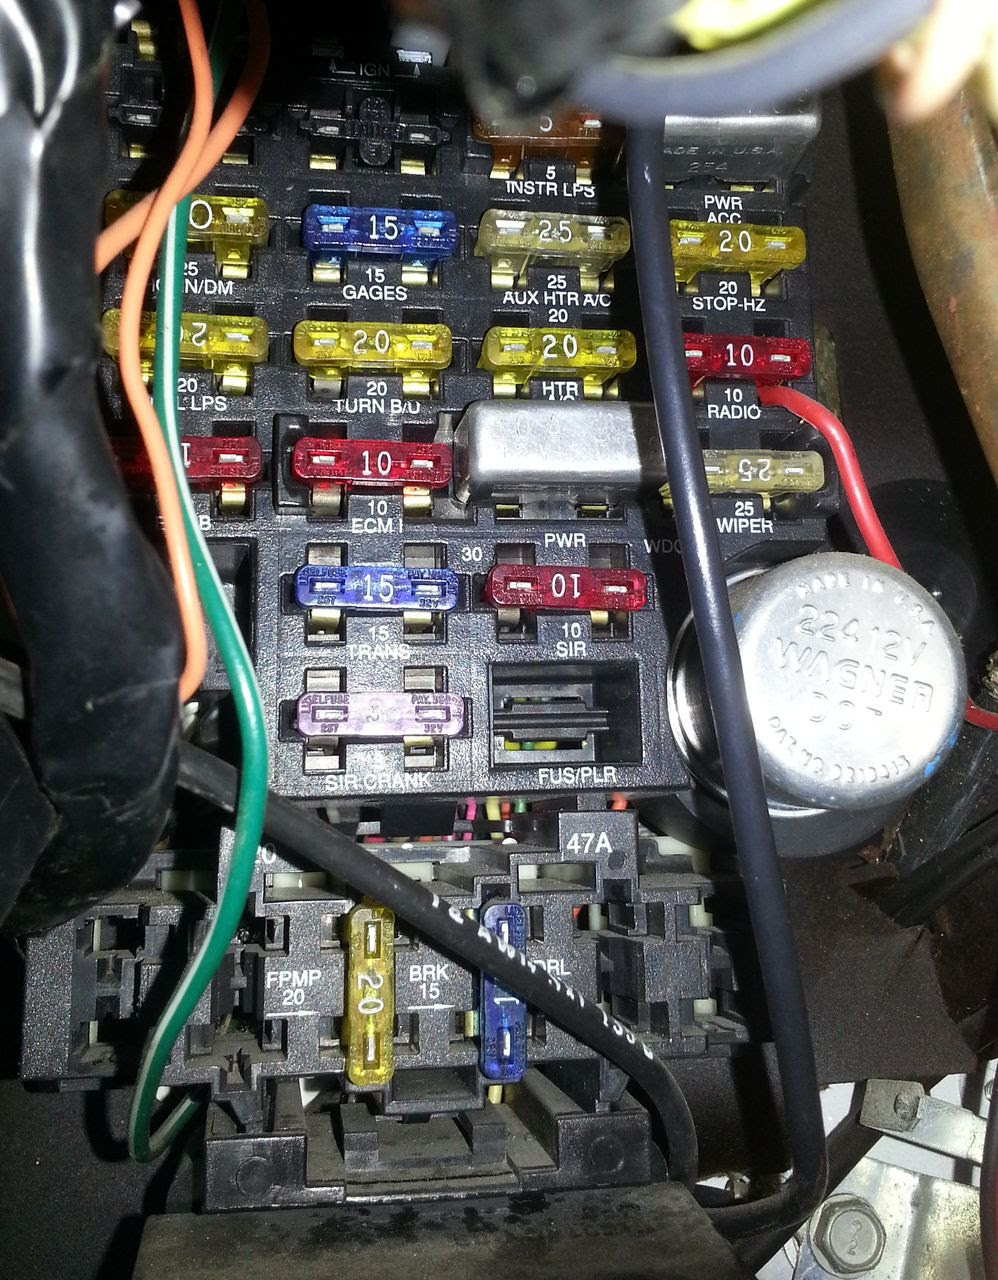 023e7 1995 Chevy Astro Wiring Diagram Wiring Resources